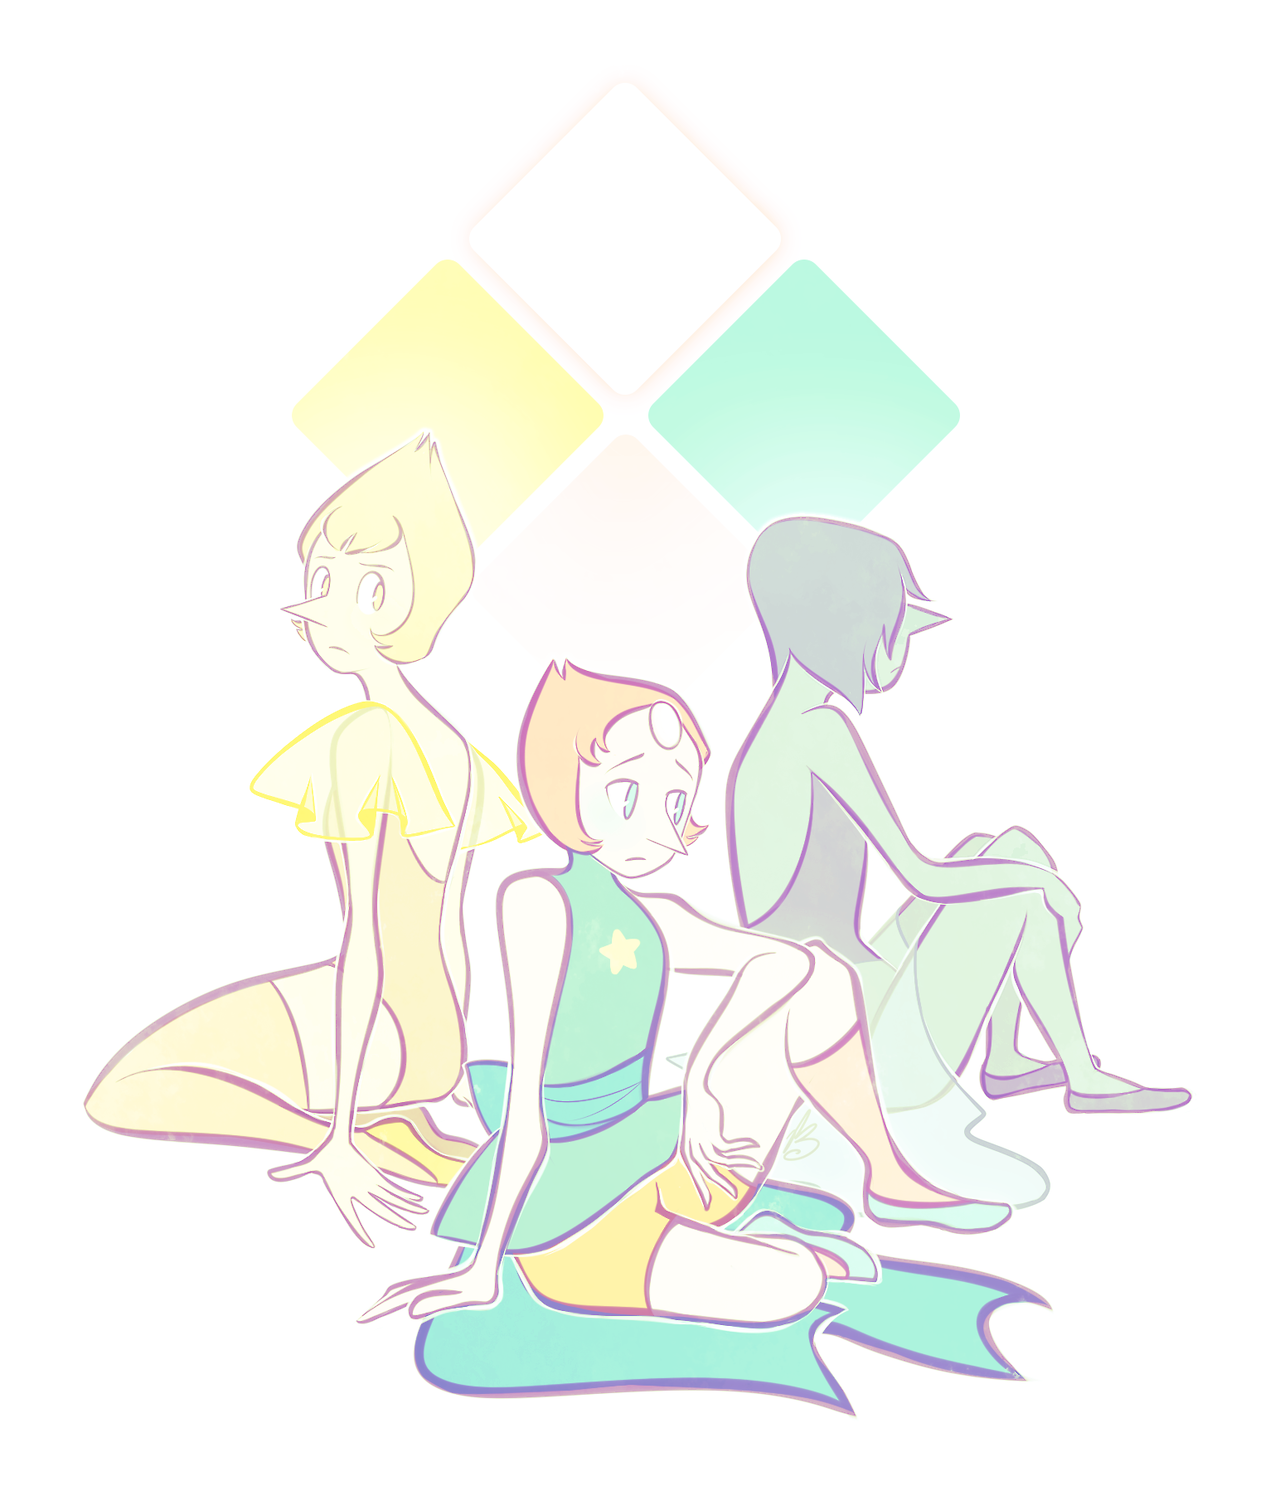 pearls | commissions are open |